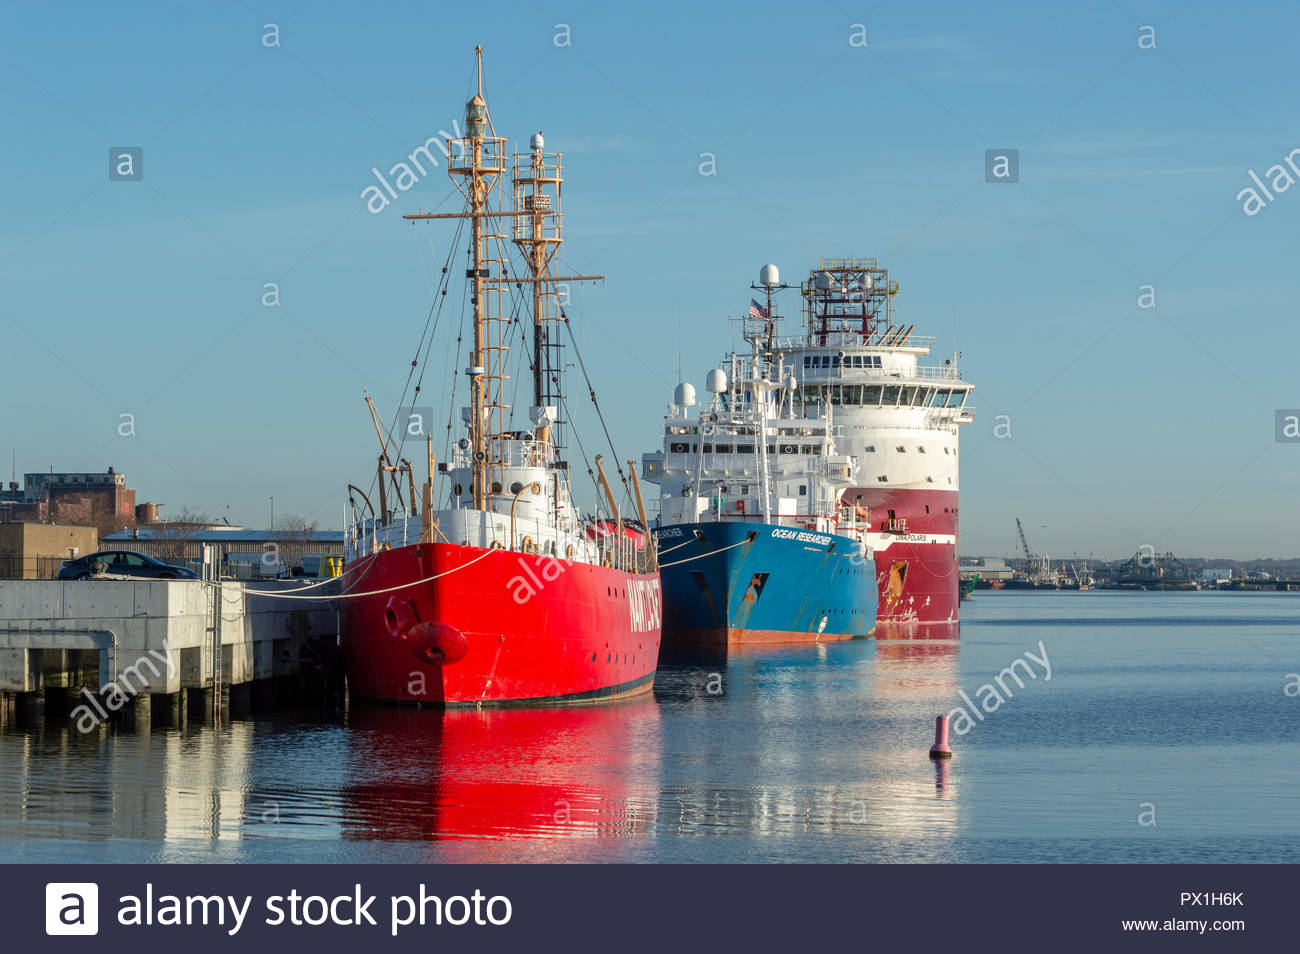 New Bedford, Massachusetts, USA - April 24, 2018: Geotechnical drilling vessel Dina Polaris, research vessel Ocean Researcher and decommissioned Nantu - Stock Image